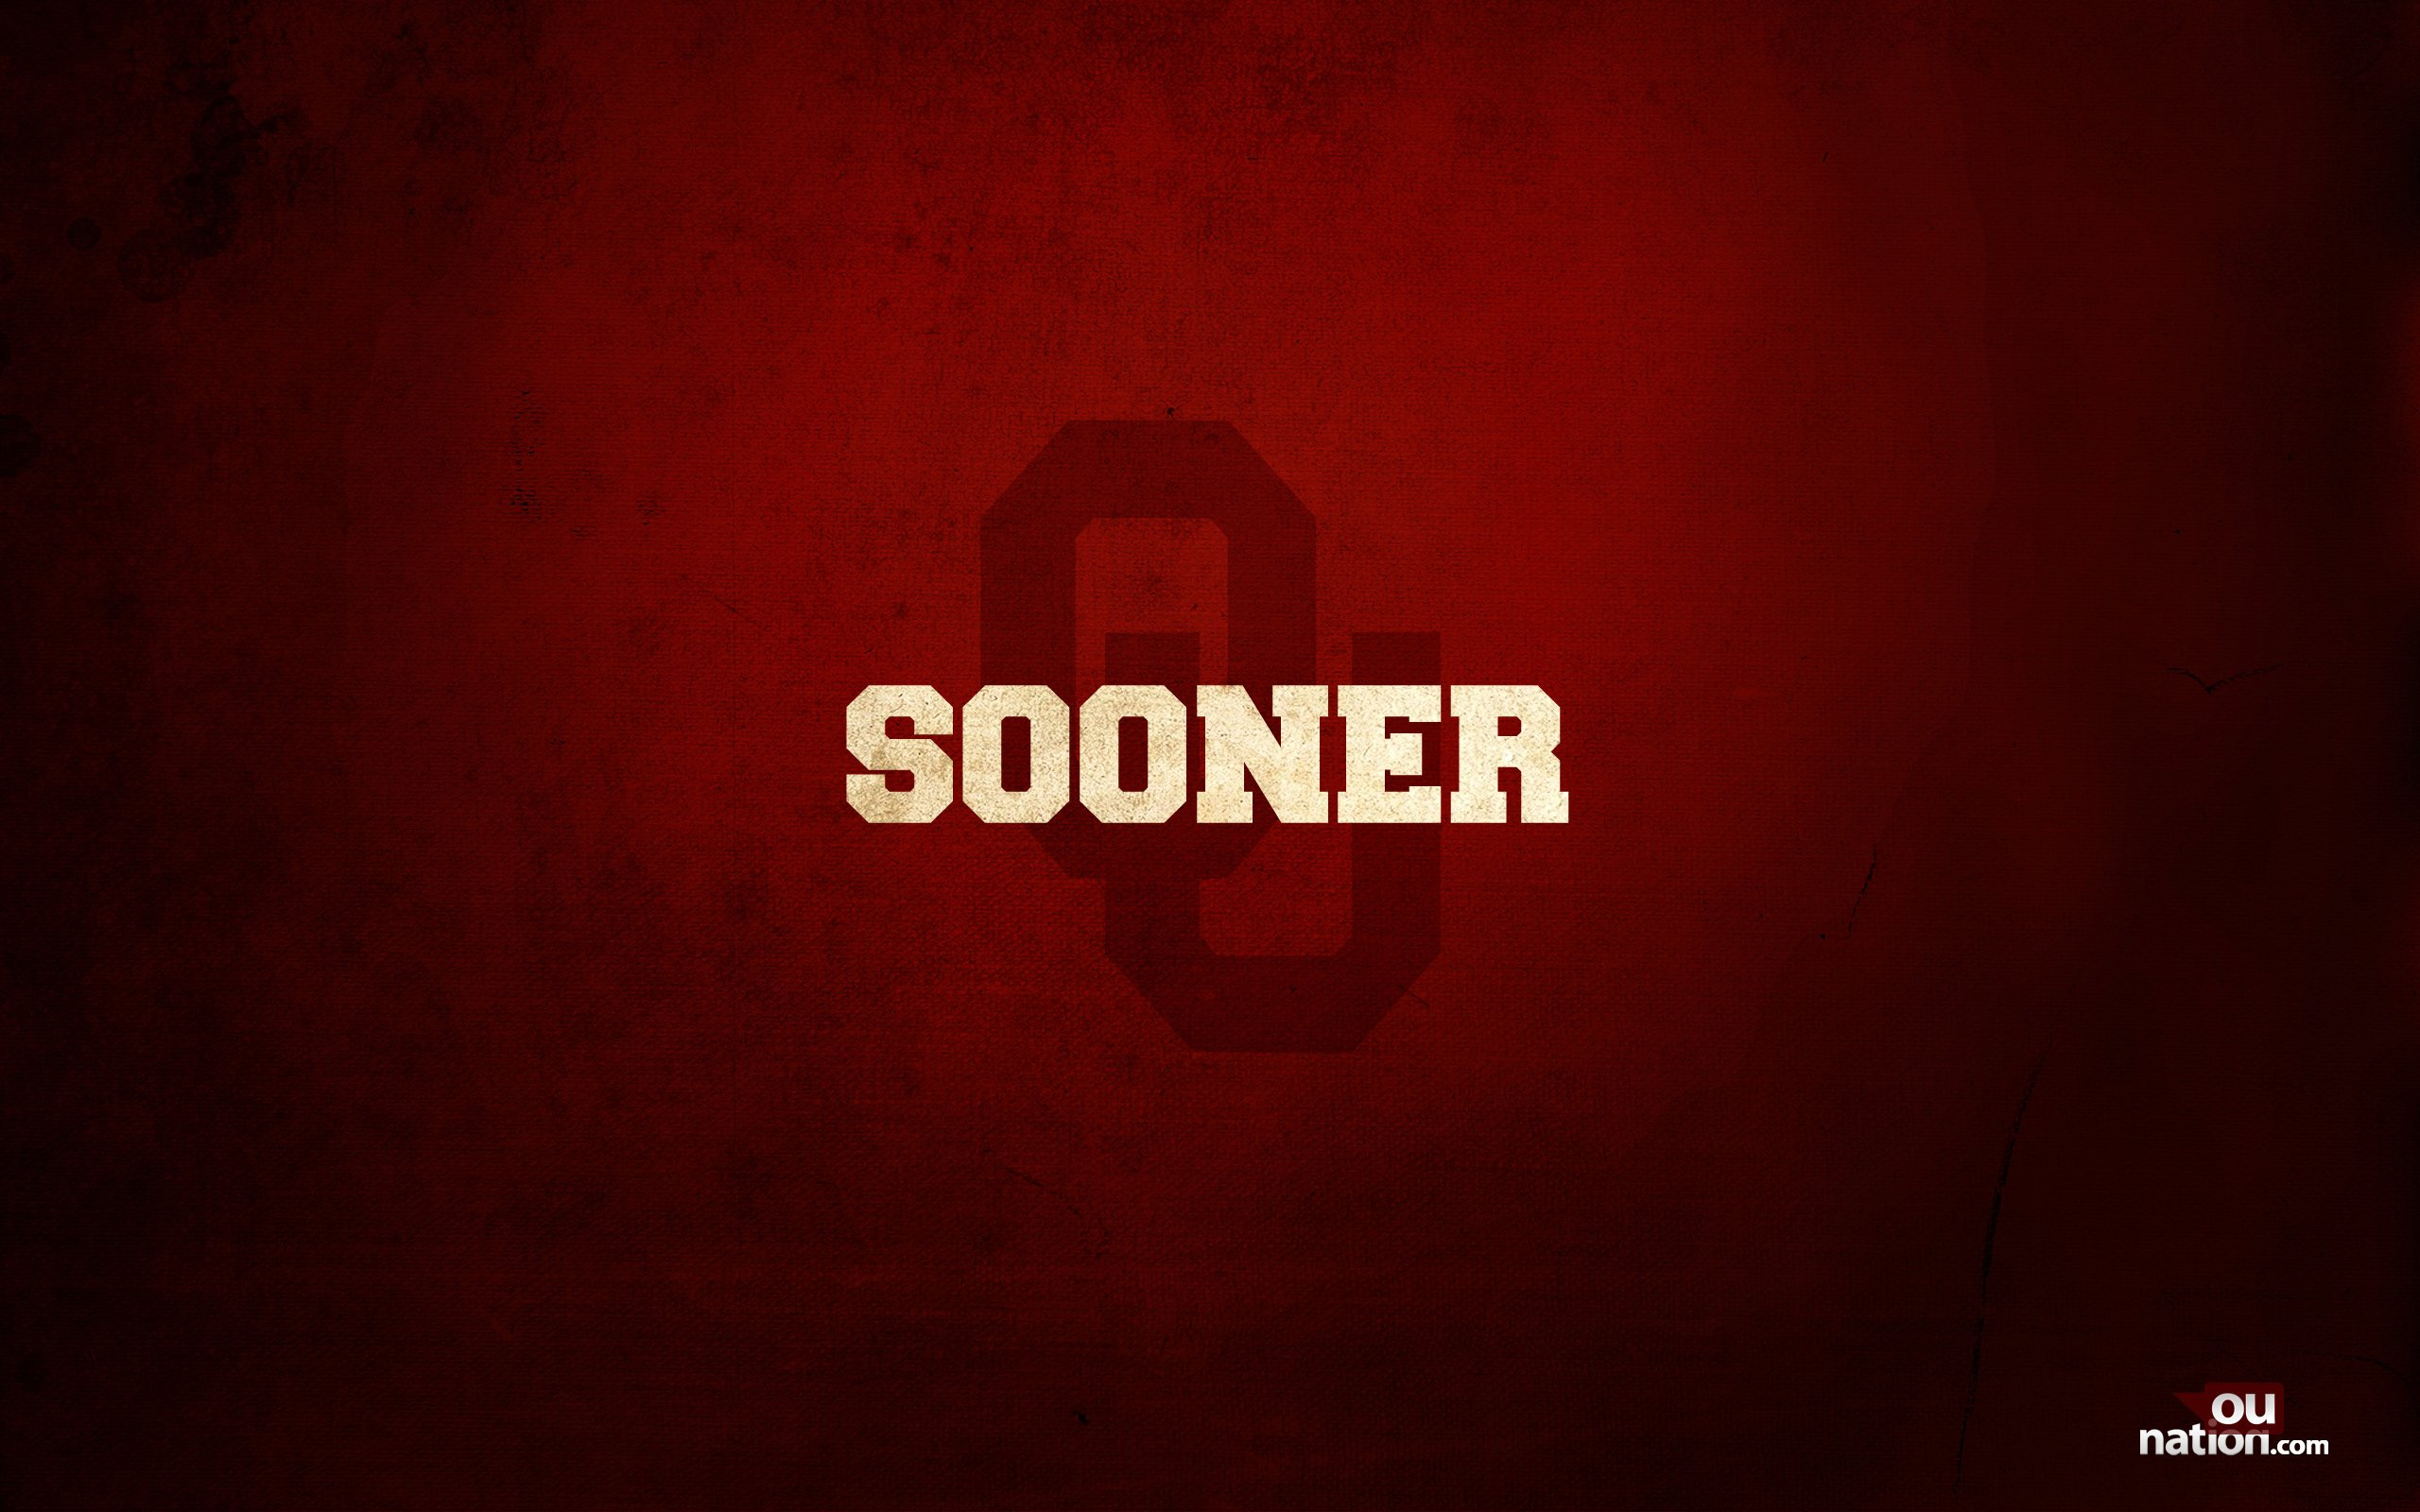 OKLAHOMA SOONERS college football wallpaper 2560x1600 594068 2560x1600